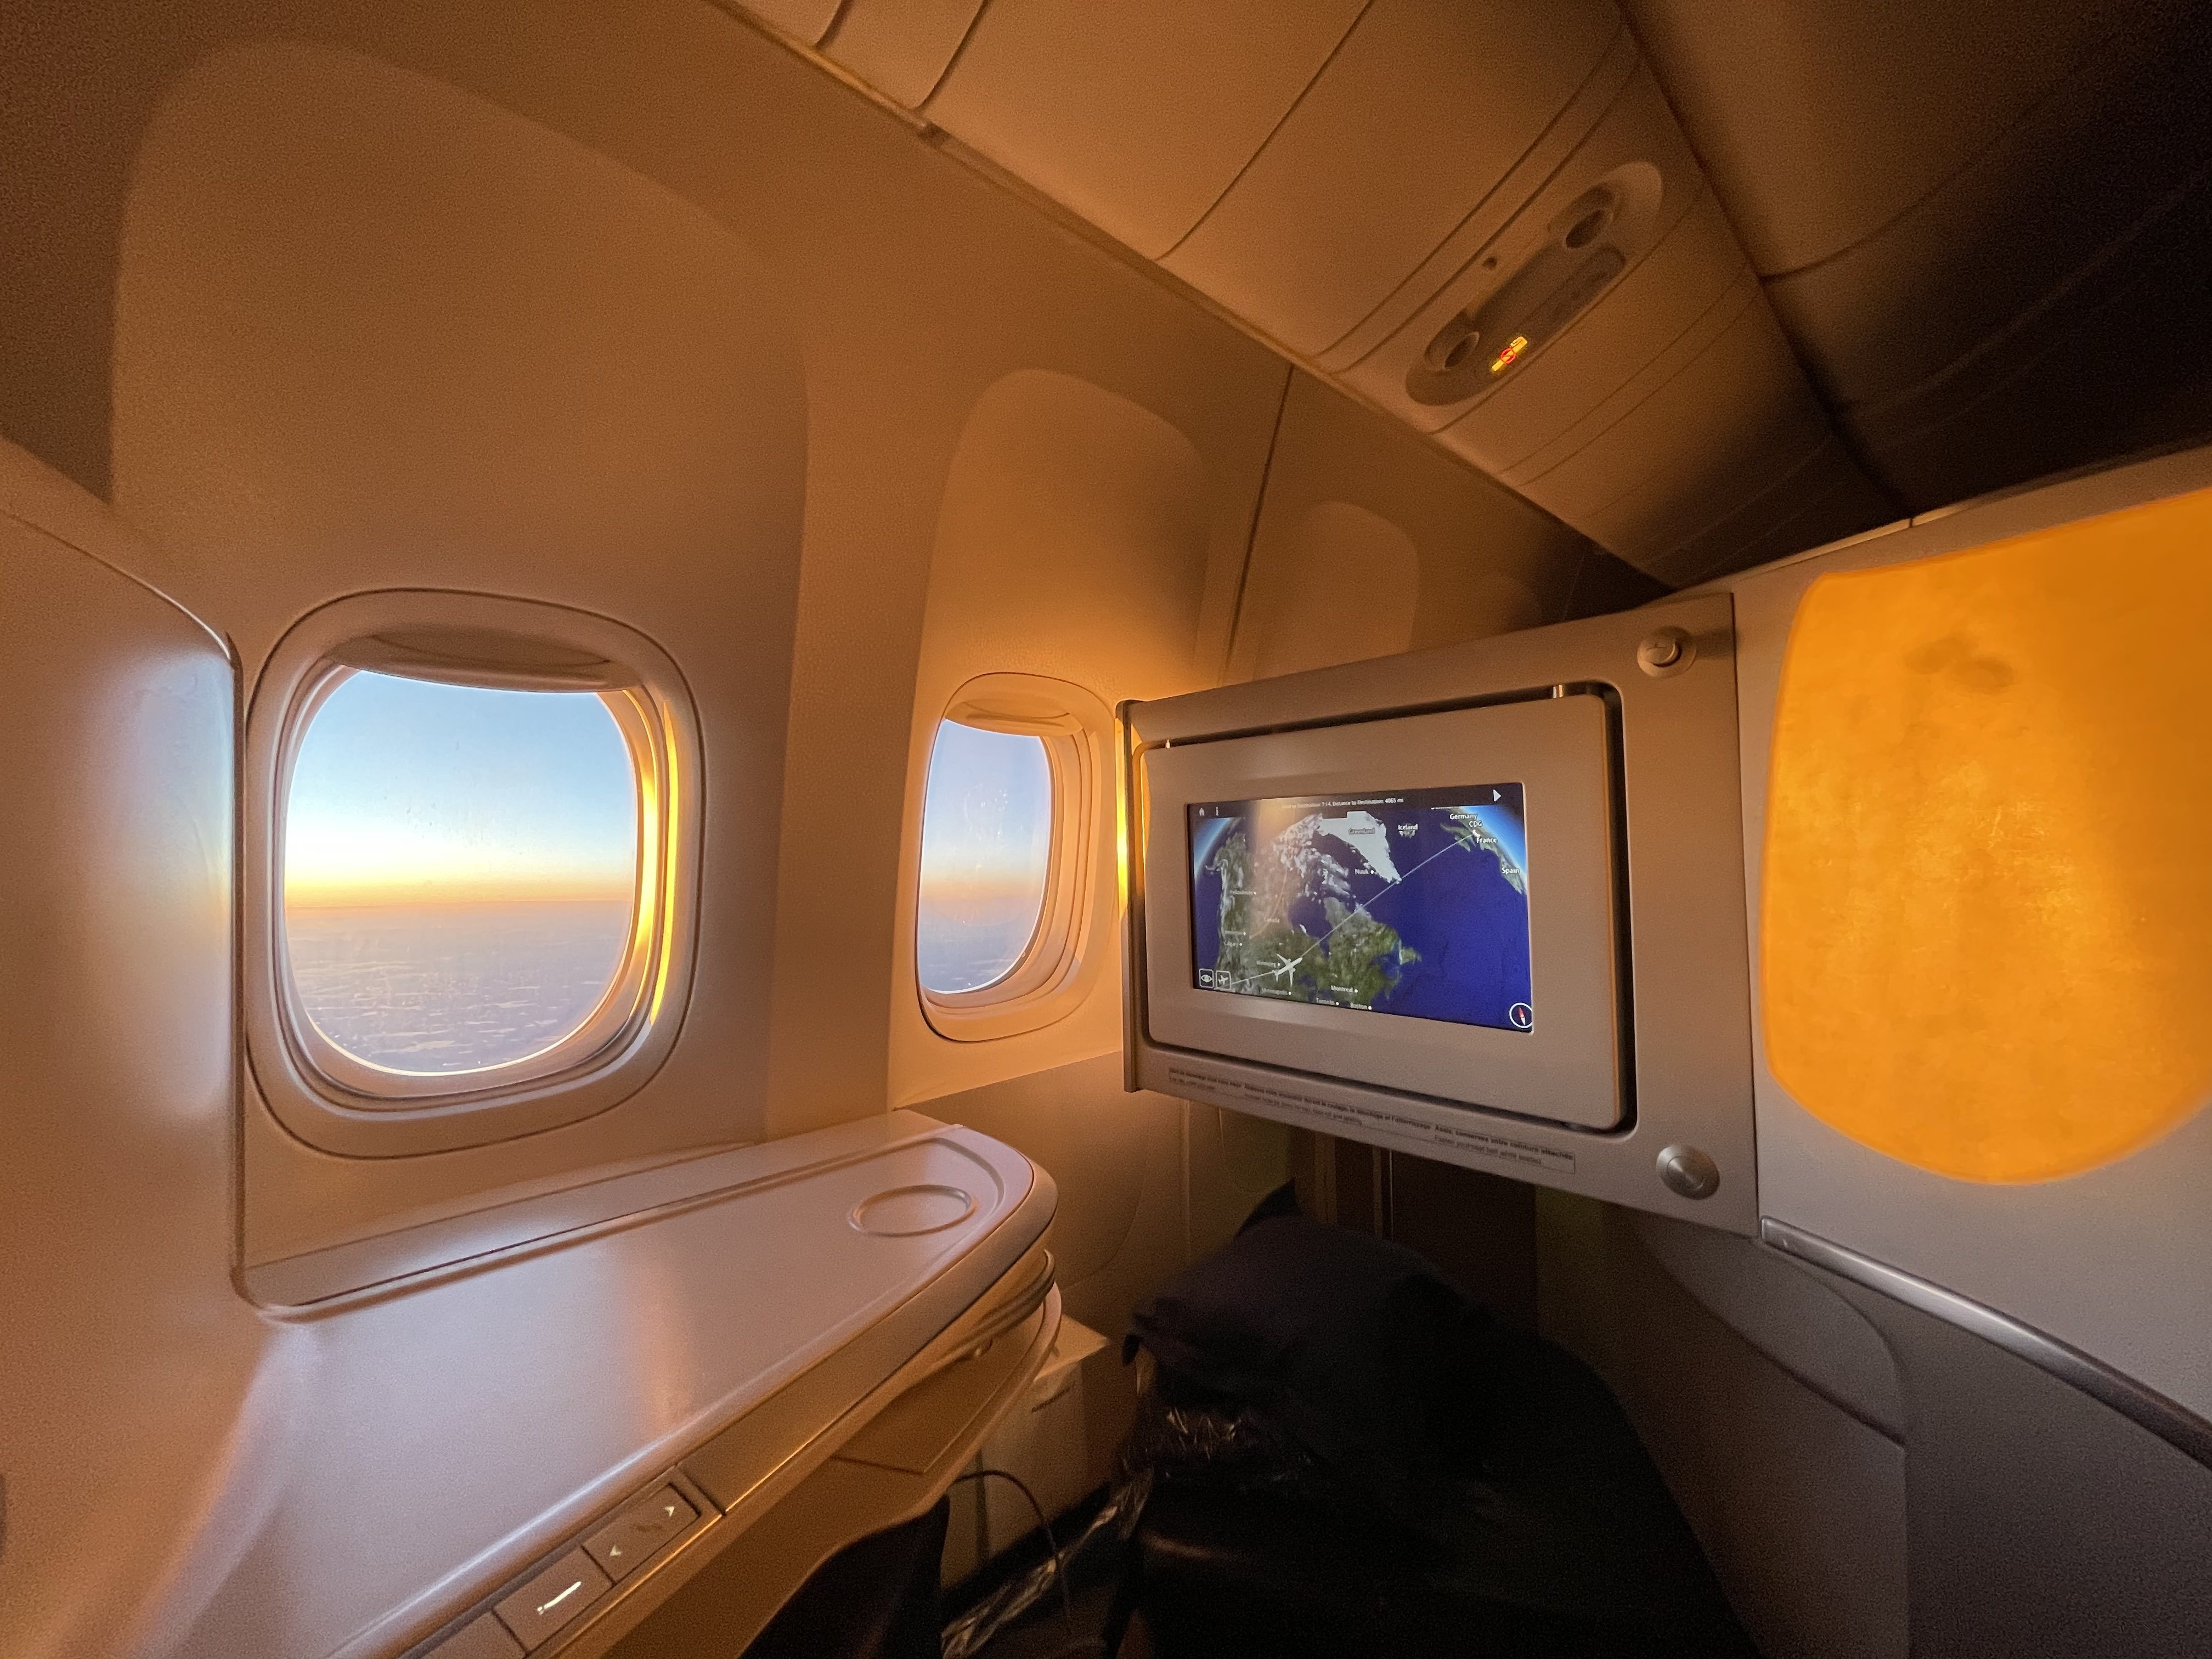 Air France business class seat on the 777-300ER